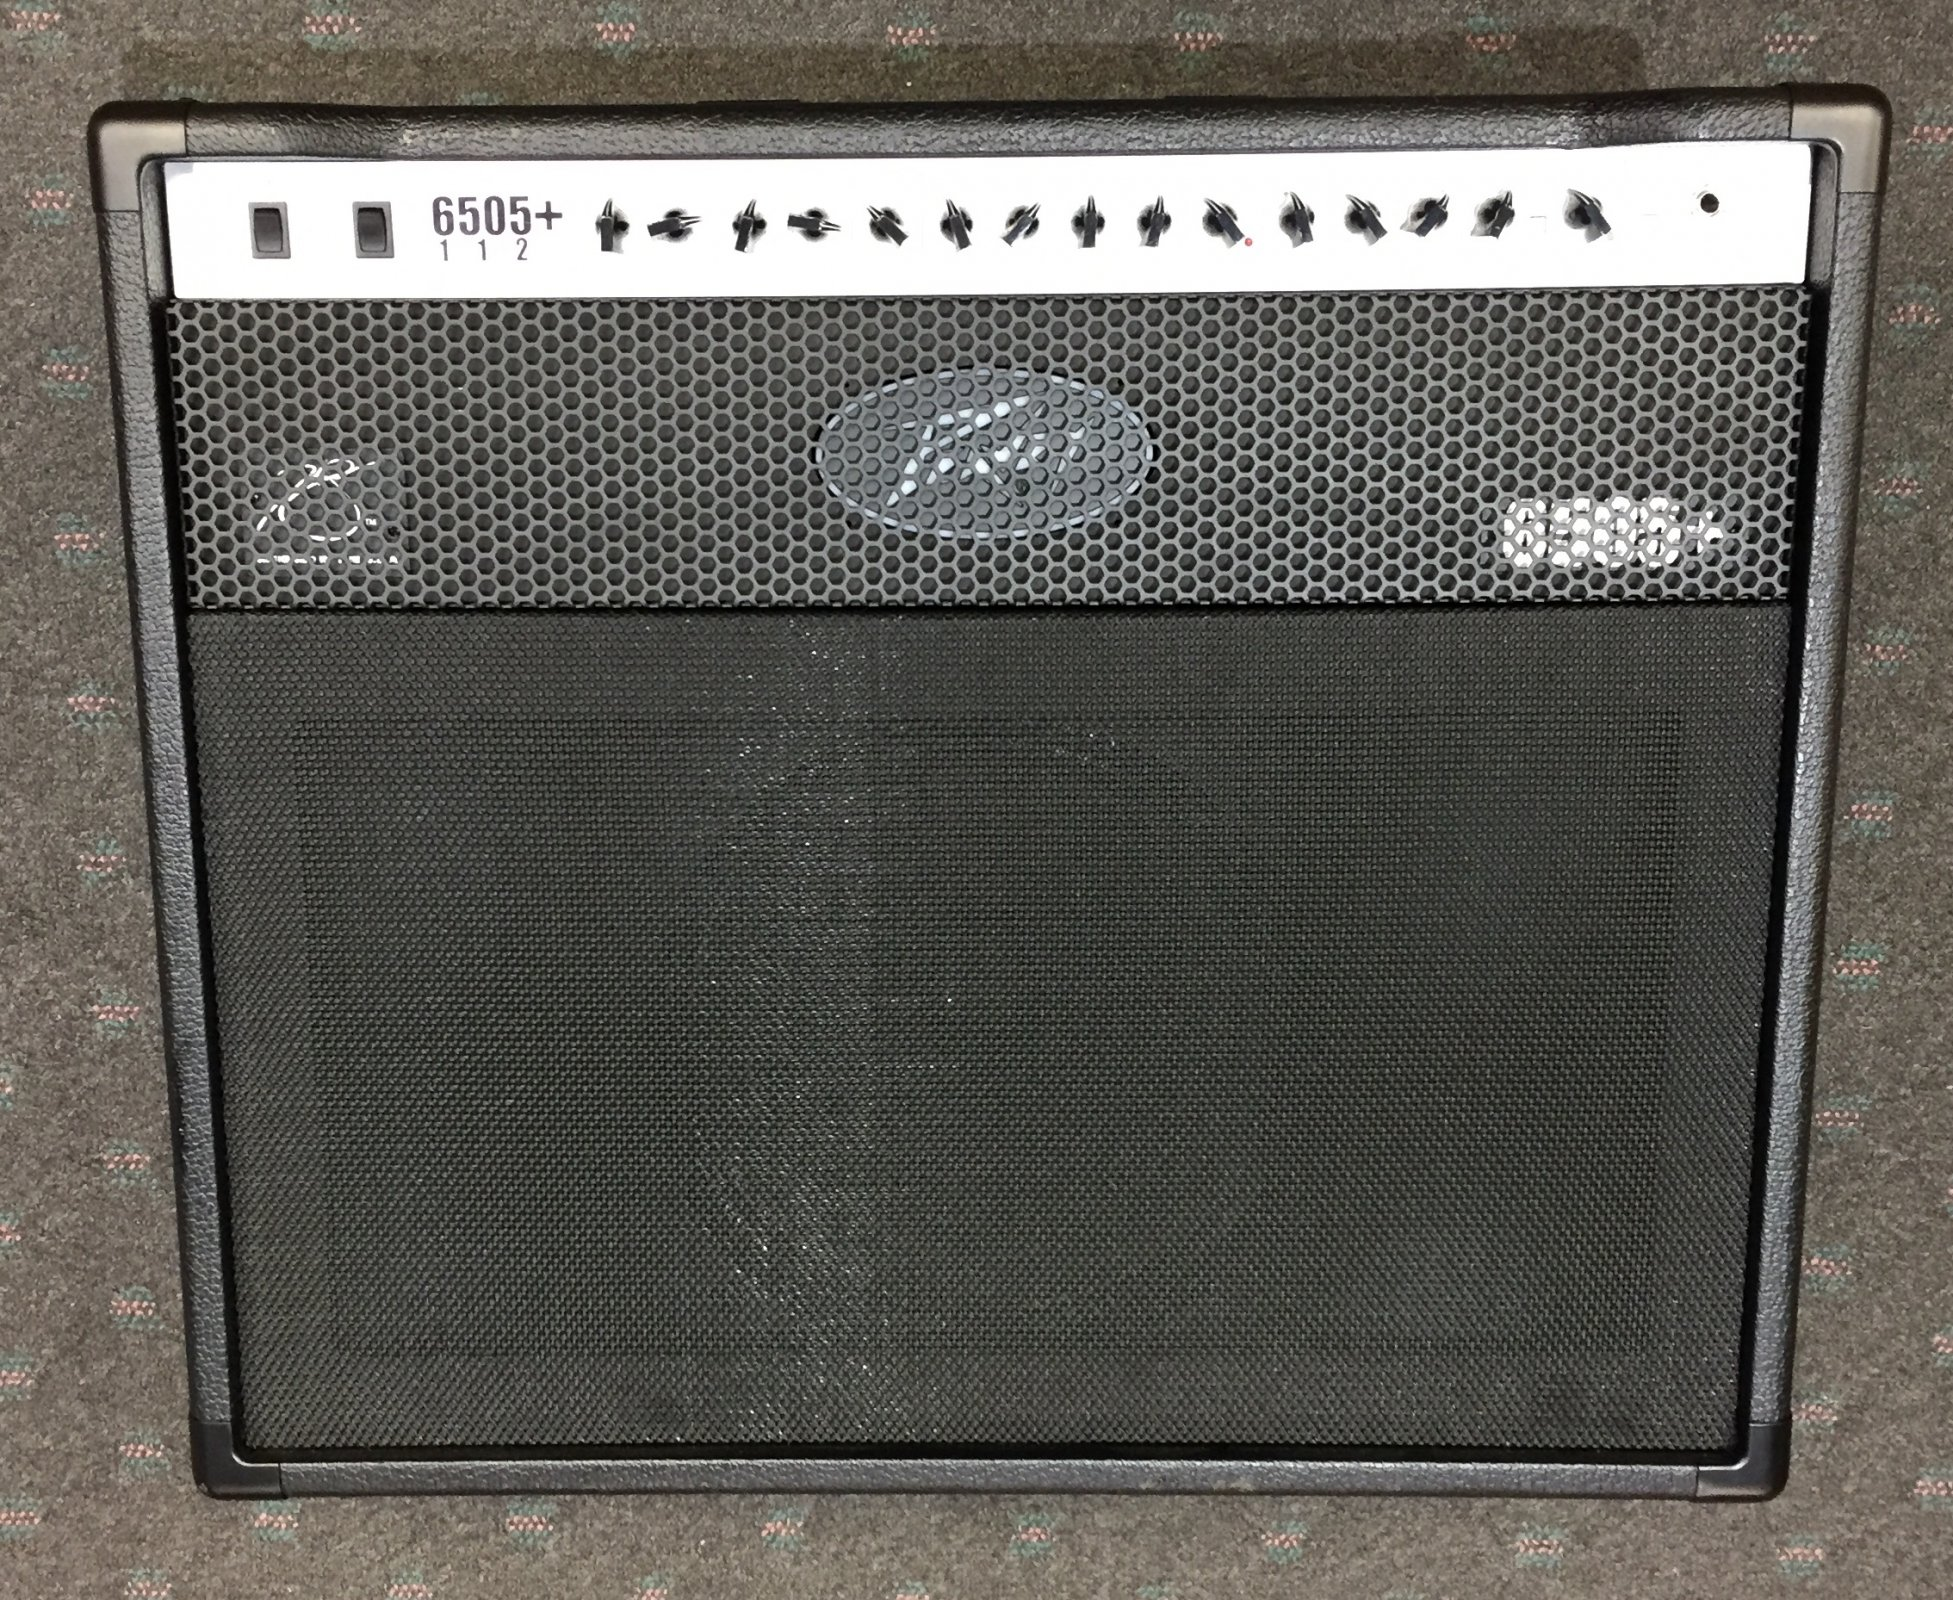 USED Peavey 6505 + 112 Tube Guitar Amp w/Footswitch